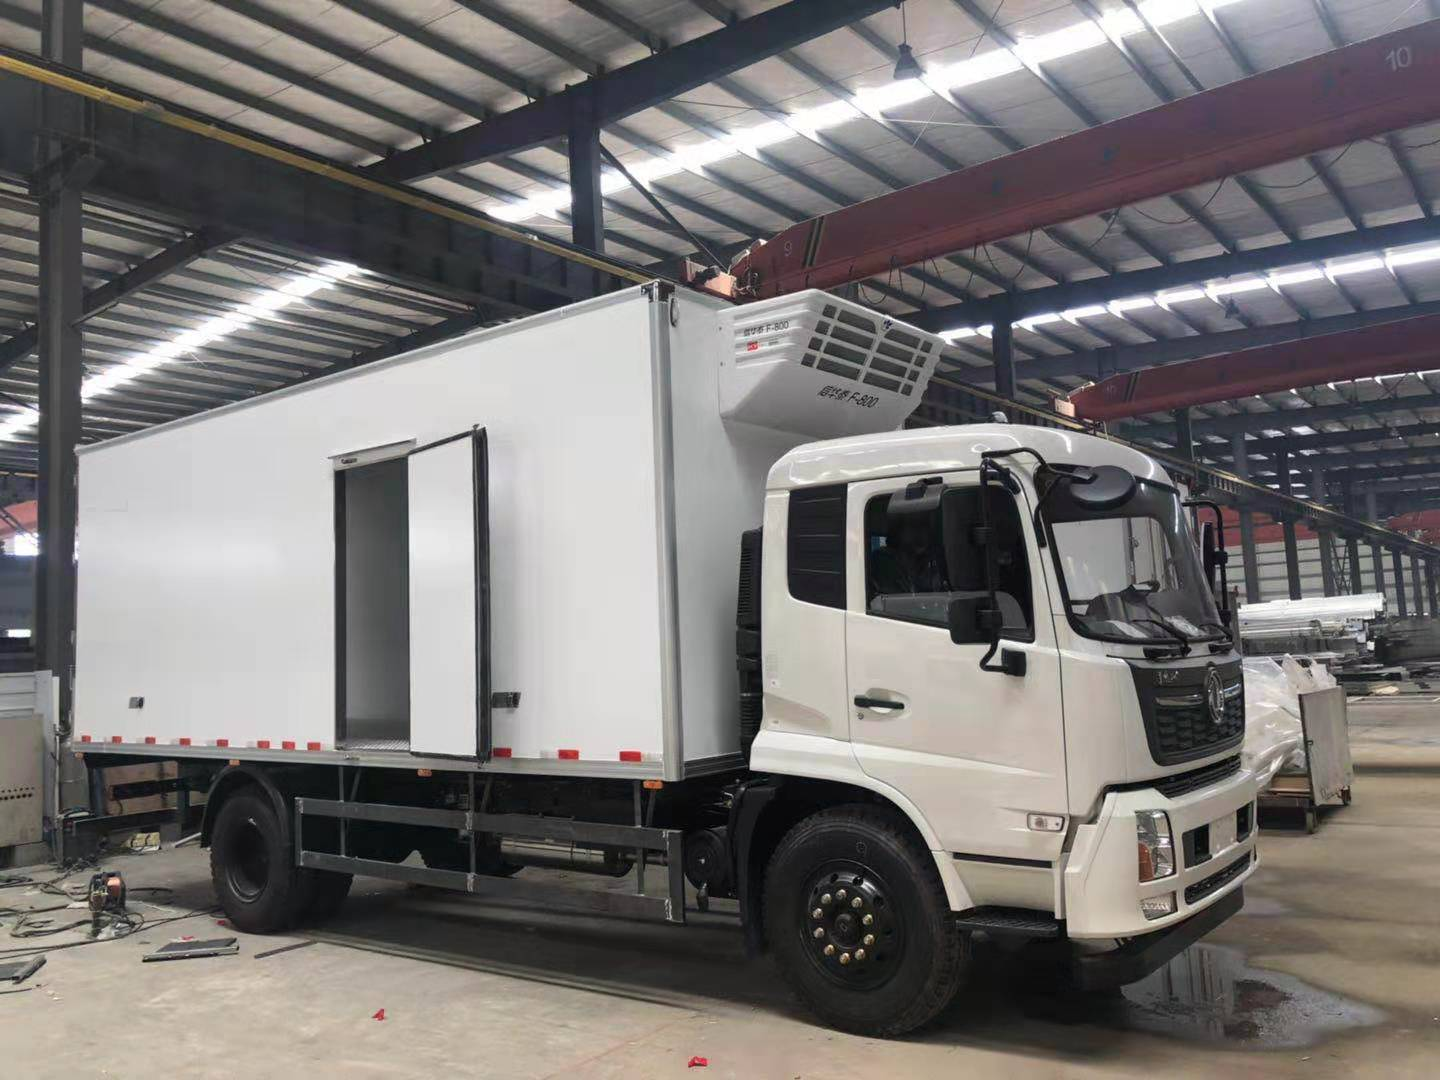 Refrigeration equipment for truck